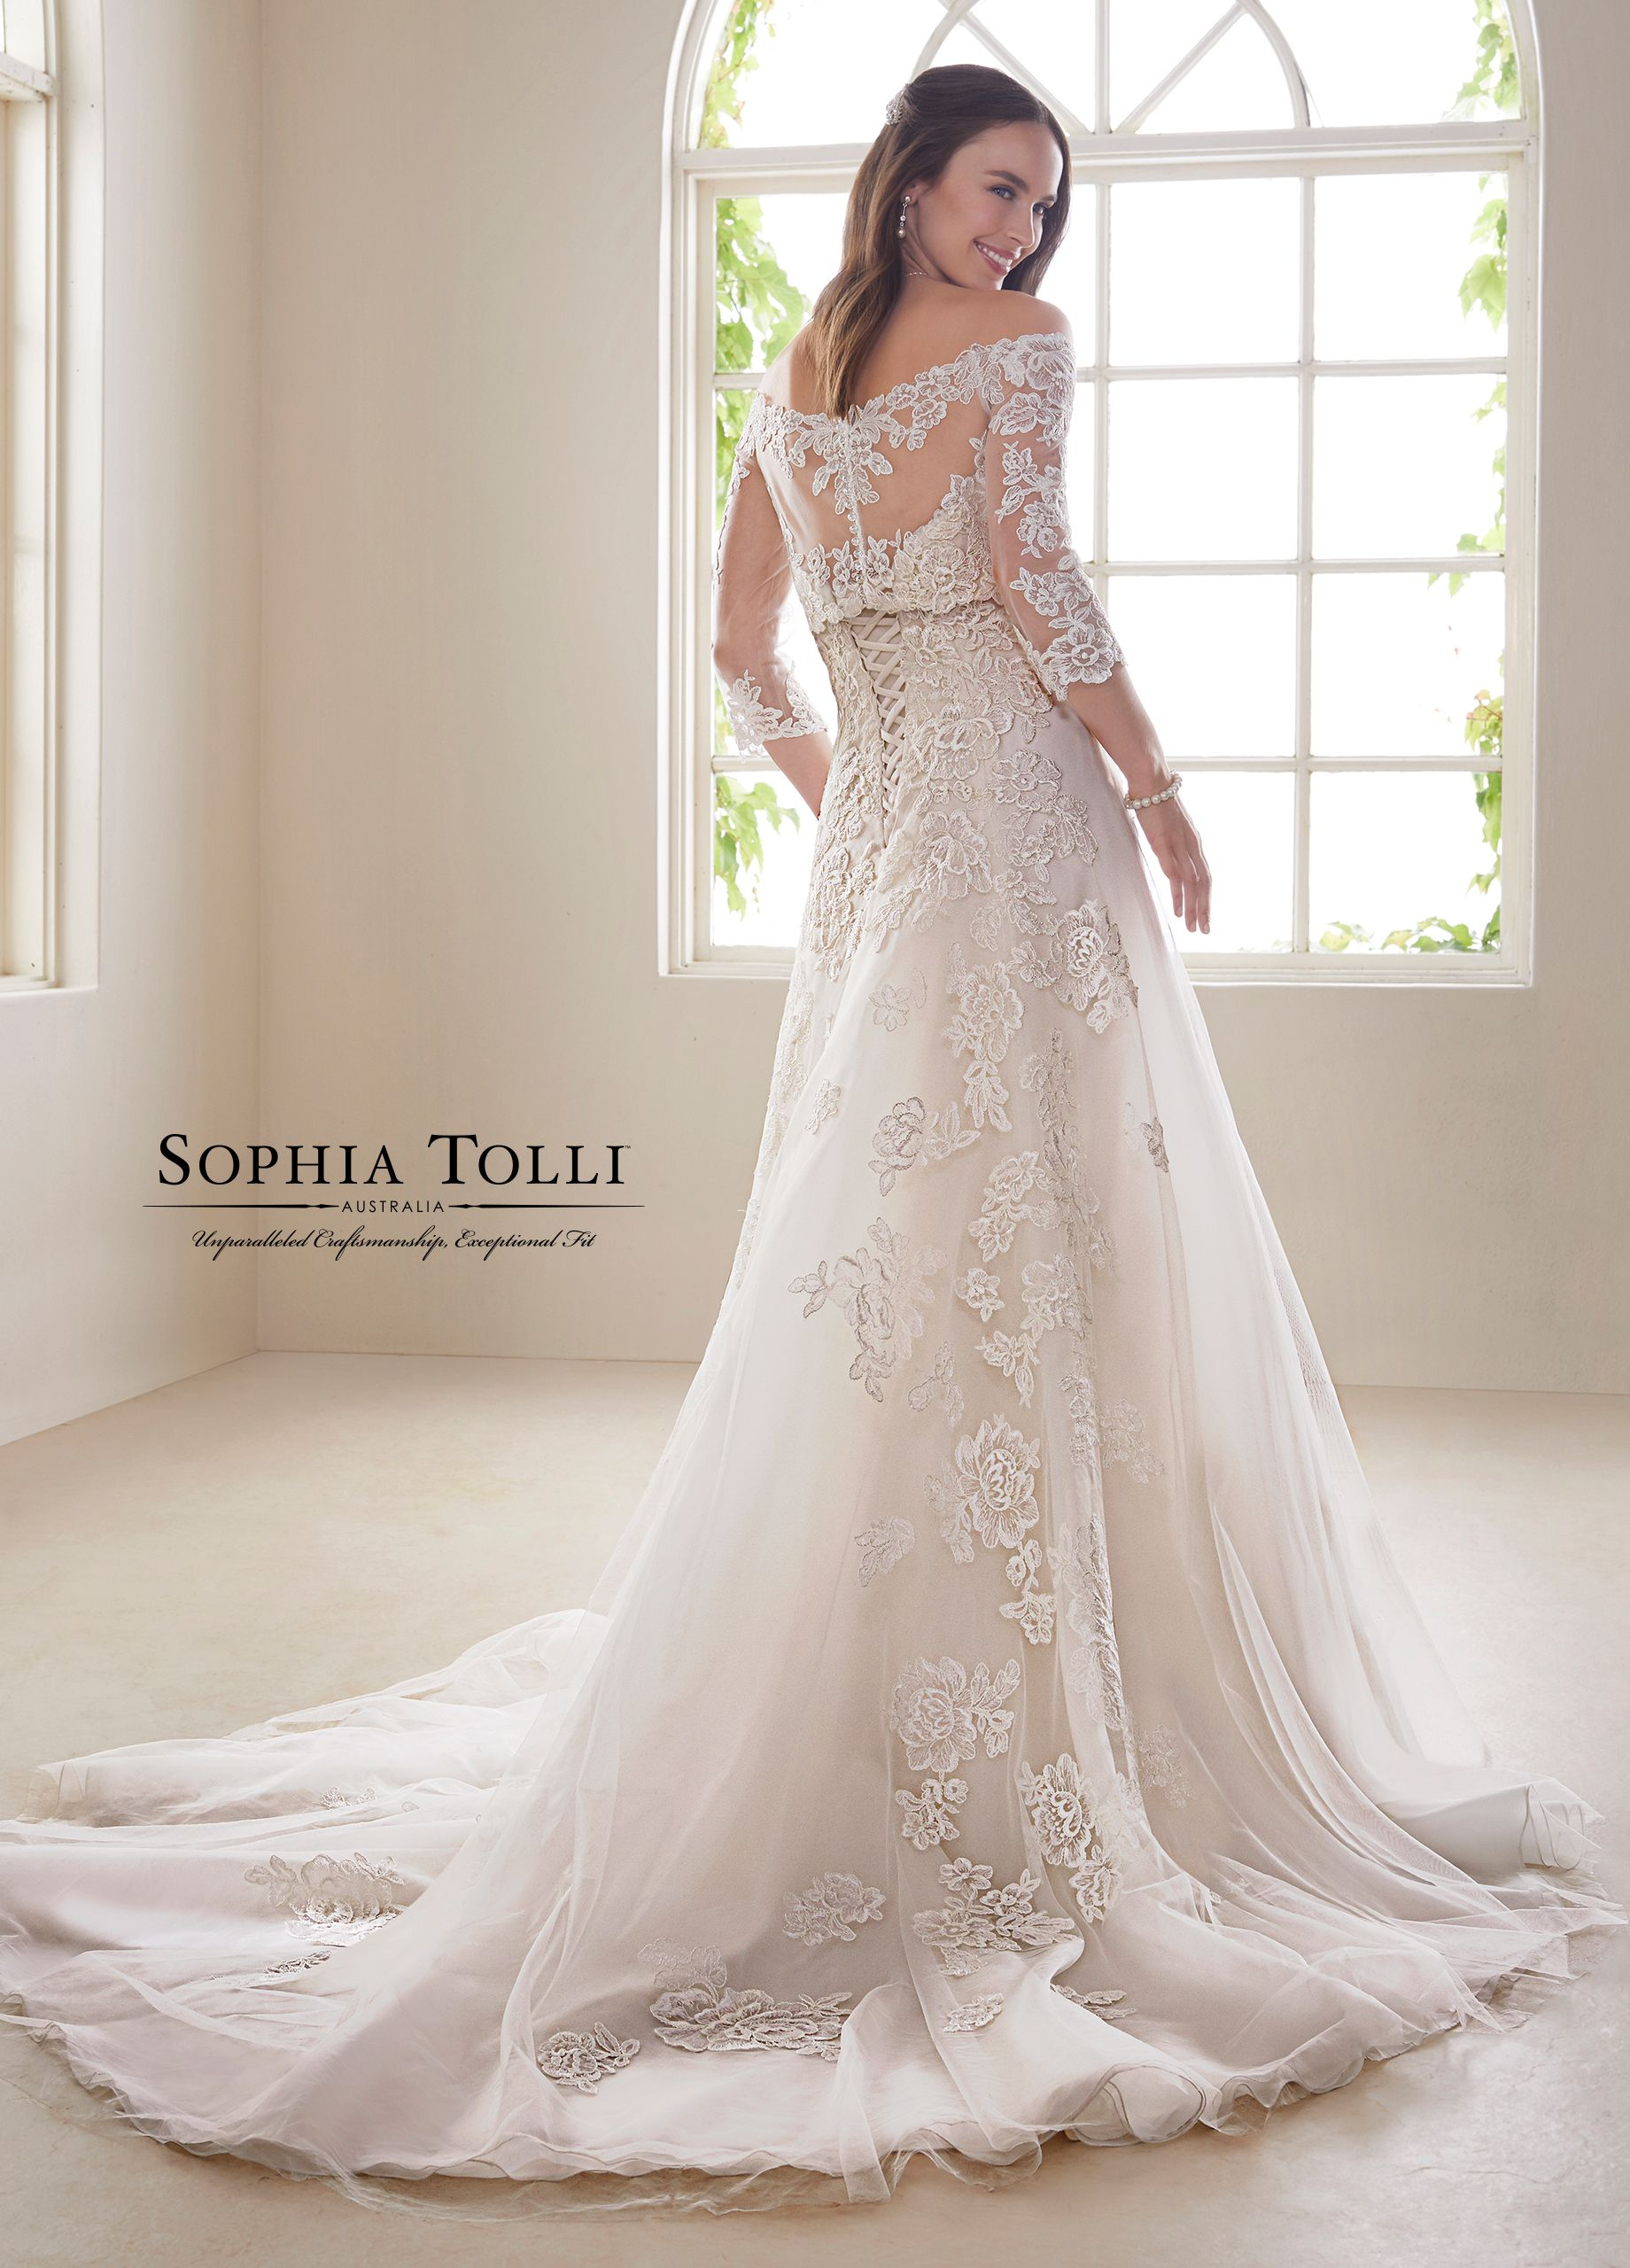 ca4034ed1902 ... Classically elegant, misty tulle and organza A-line gown Zirconia is a  real beauty. The stunning gown offers a strapless sweetheart bodice with  lace ...